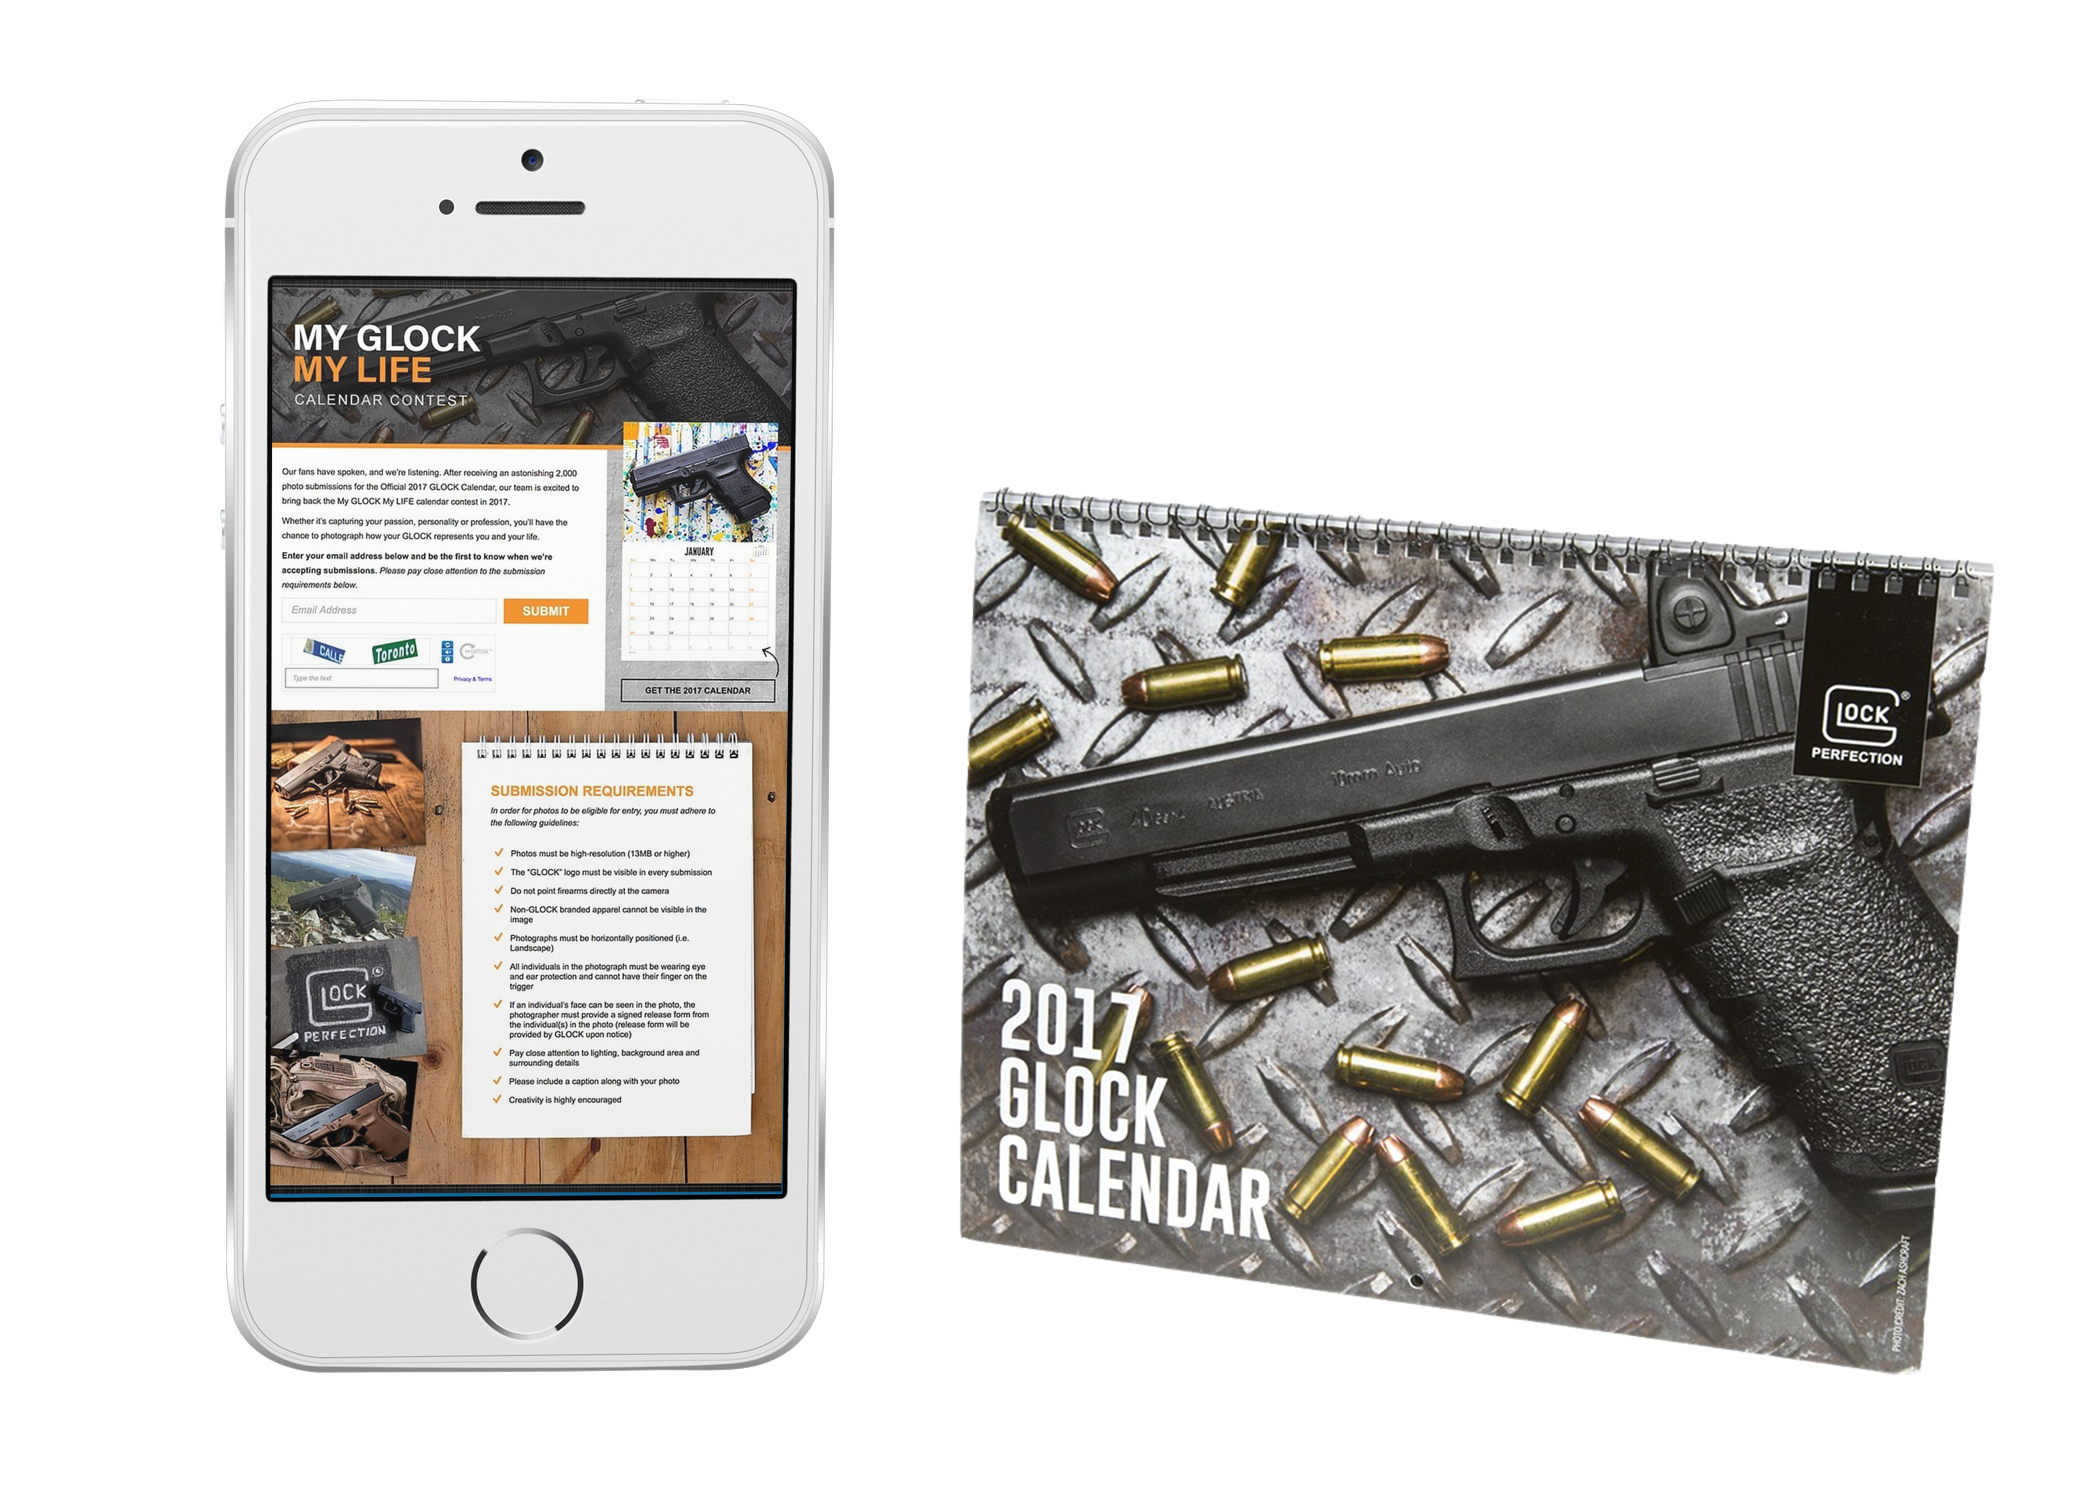 """CREATED FIRST EVER """"MY GLOCK. MY LIFE"""" CAMPAIGN WHICH INTEGRATED SOCIAL MEDIA AND USER GENERATED PHOTOS TO CREATE AN ANNUAL GLOCK CALENDAR."""